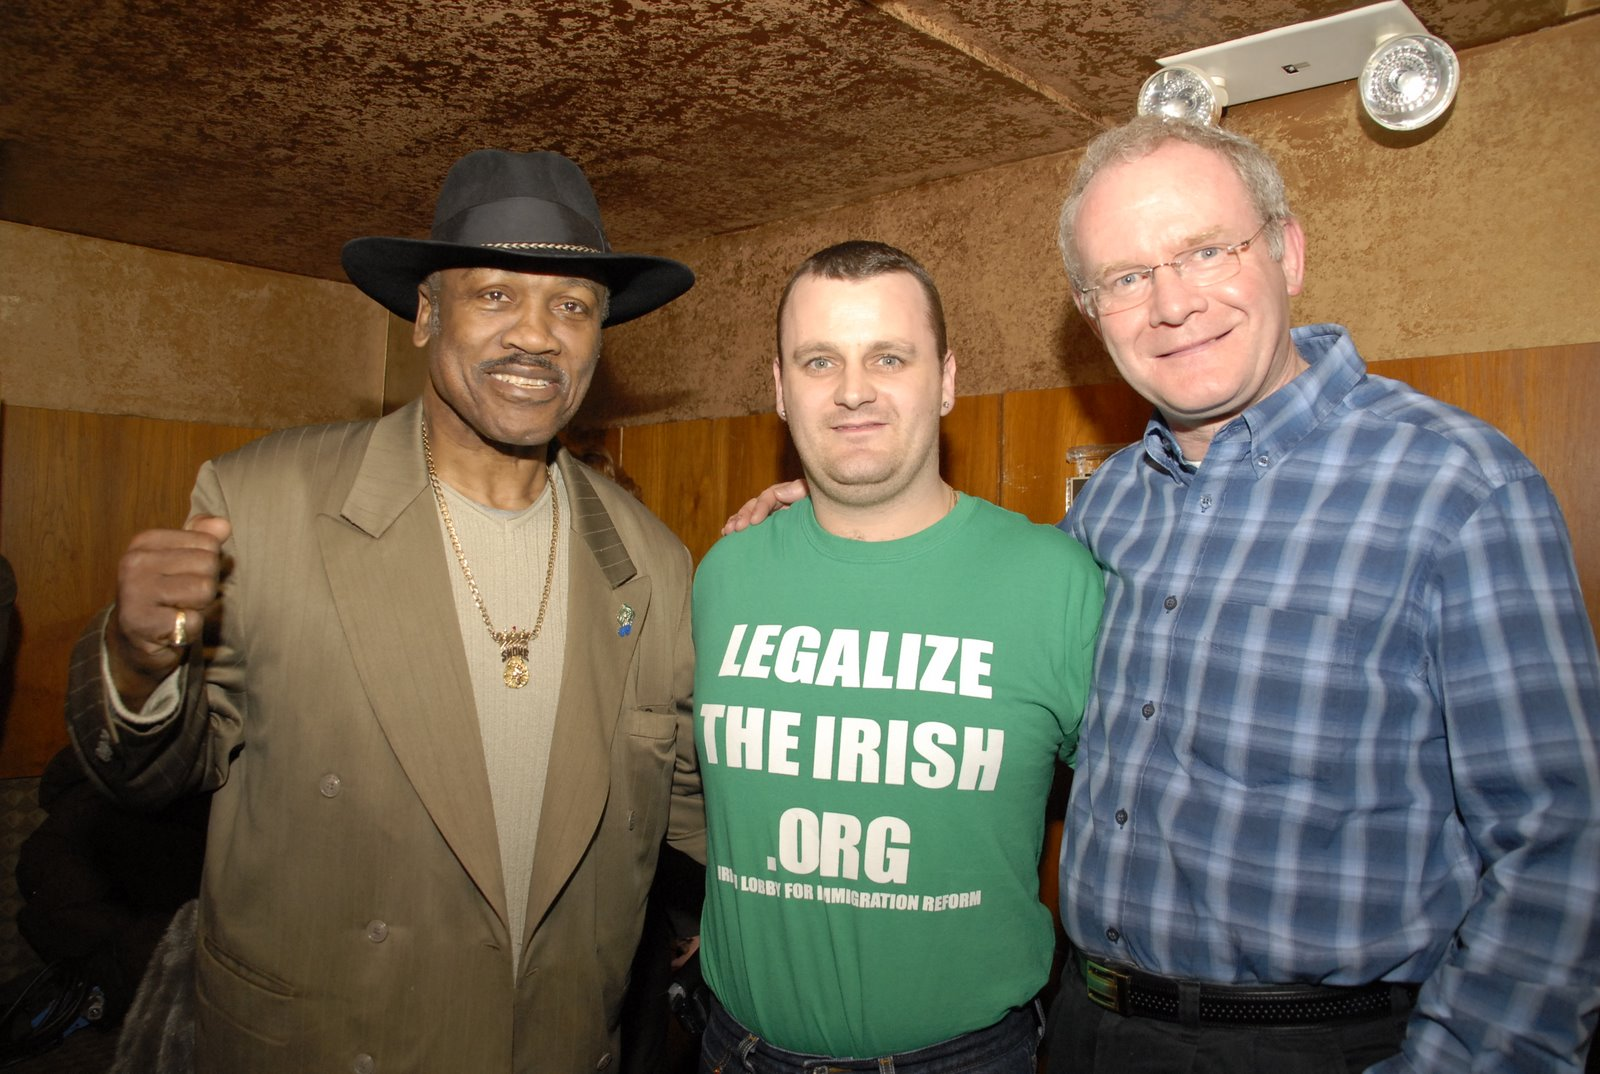 [Legalize+the+Irish+-+Smokin+Joe+Frazier+Micheal+McMahan+and+Martin+McGuinness]